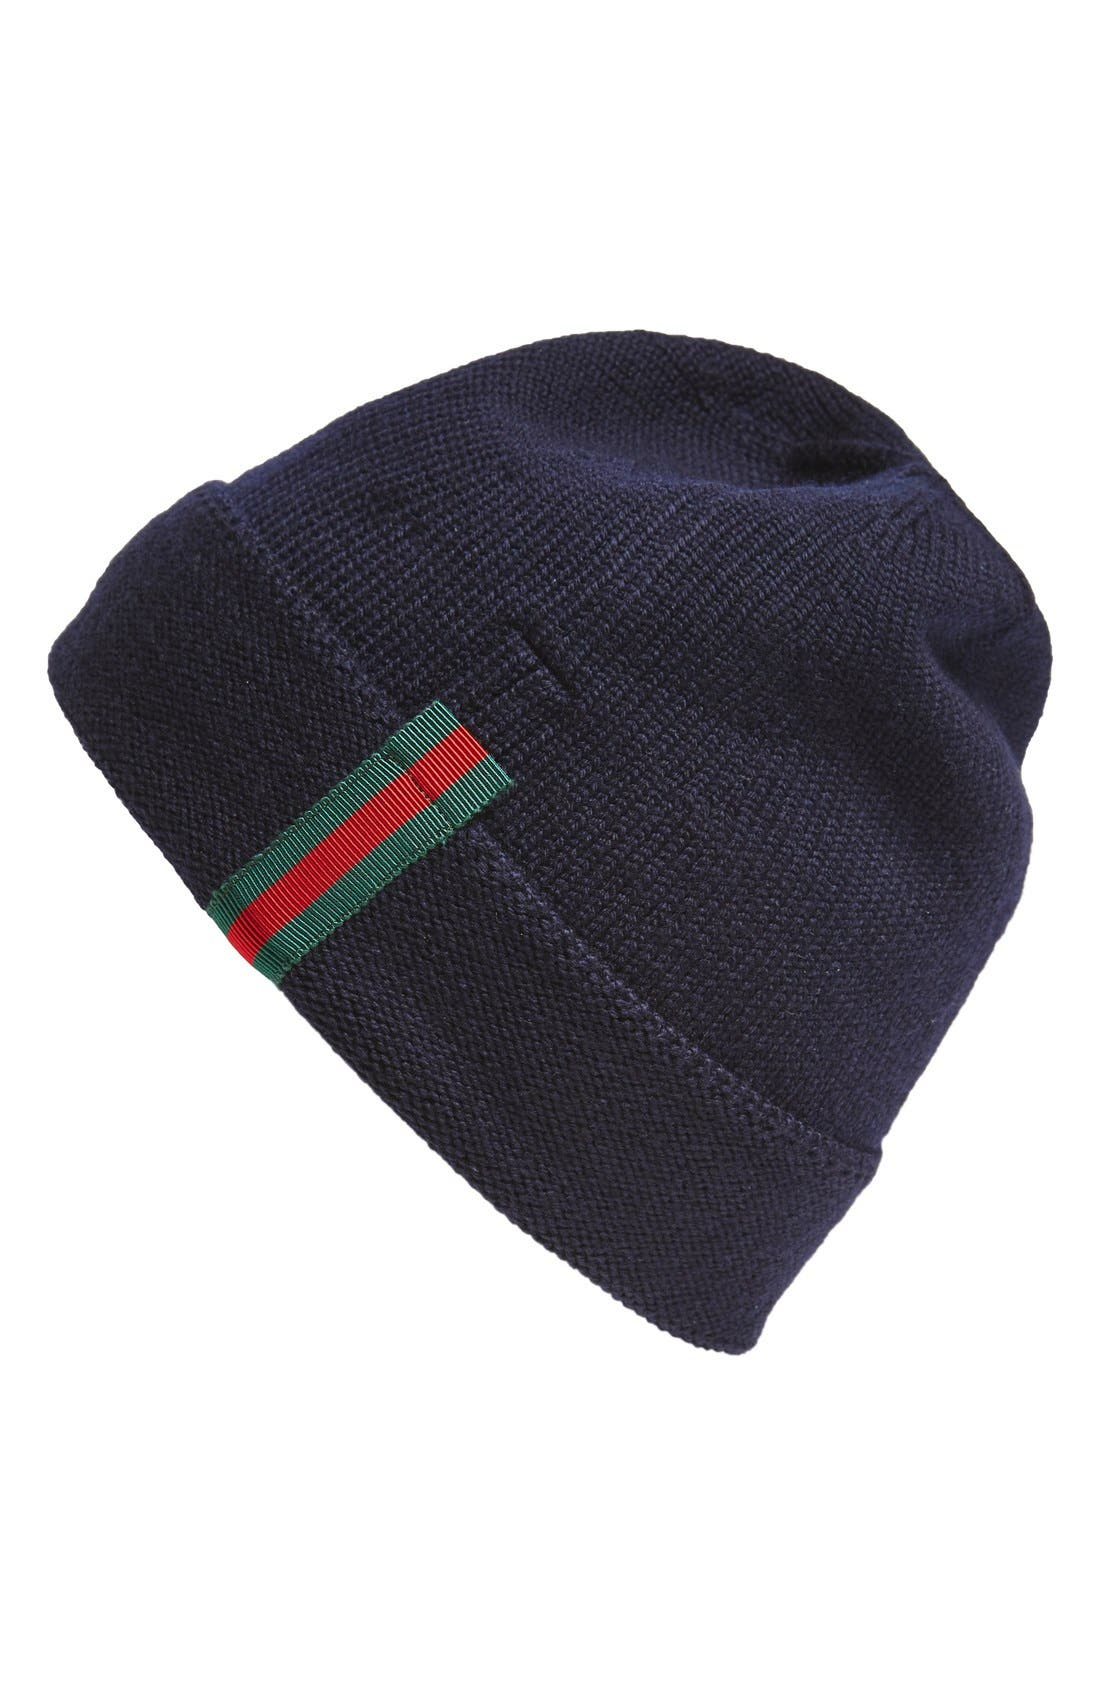 Alternate Image 1 Selected - Gucci Wool Beanie